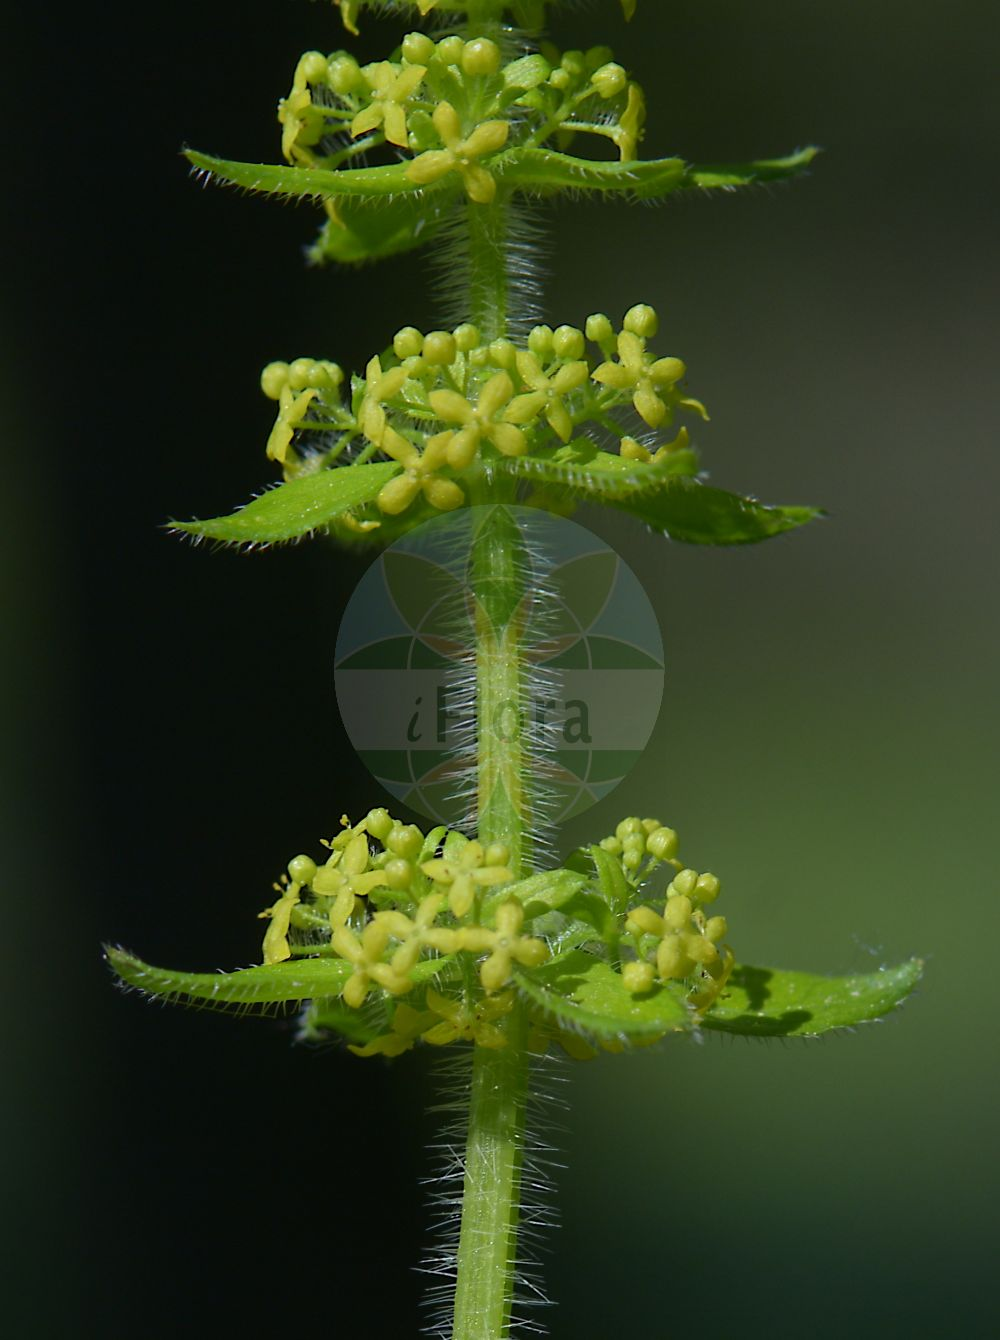 Foto von Cruciata laevipes (Gewoehnliches Kreuzlabkraut - Crosswort). Das Bild zeigt Blatt und Bluete. Das Foto wurde in Wohlmuthausen, Schmalkalden-Meiningen, Thueringen, Deutschland, Suedthueringisches-Oberfraenkisches Trias-Huegelland aufgenommen. ---- Photo of Cruciata laevipes (Gewoehnliches Kreuzlabkraut - Crosswort).The image is showing leaf and flower.The picture was taken in Wohlmuthausen, Schmalkalden-Meiningen, Thuringia, Germany, Suedthueringisches-Oberfraenkisches Trias-Huegelland.(Cruciata laevipes,Gewoehnliches Kreuzlabkraut,Crosswort,Cruciata ciliata,Galium cruciata,Valantia cruciata,Smooth Bedstraw,Cruciata,Kreuzlabkraut,Bedstraw,Rubiaceae,Roetegewaechse;Kaffeegewaechse;Krappgewaechse;Labkrautgewaechse,Bedstraw family,Blatt,Bluete,leaf,flower)